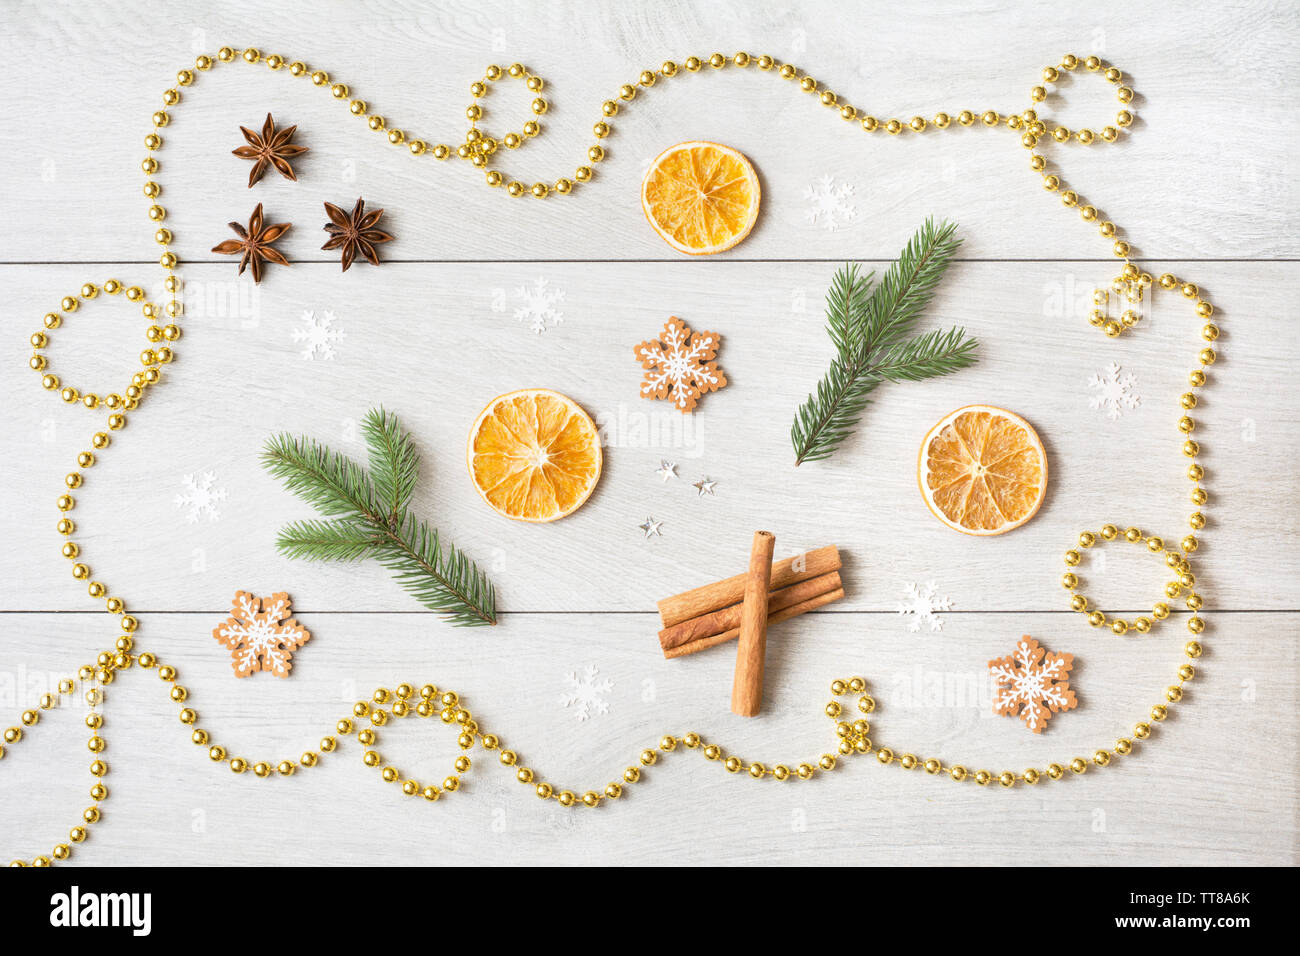 Christmas concept with dried oranges, aniseed stars, fir tree branches, snow flakes and golden bead chain on white wooden background - Stock Image